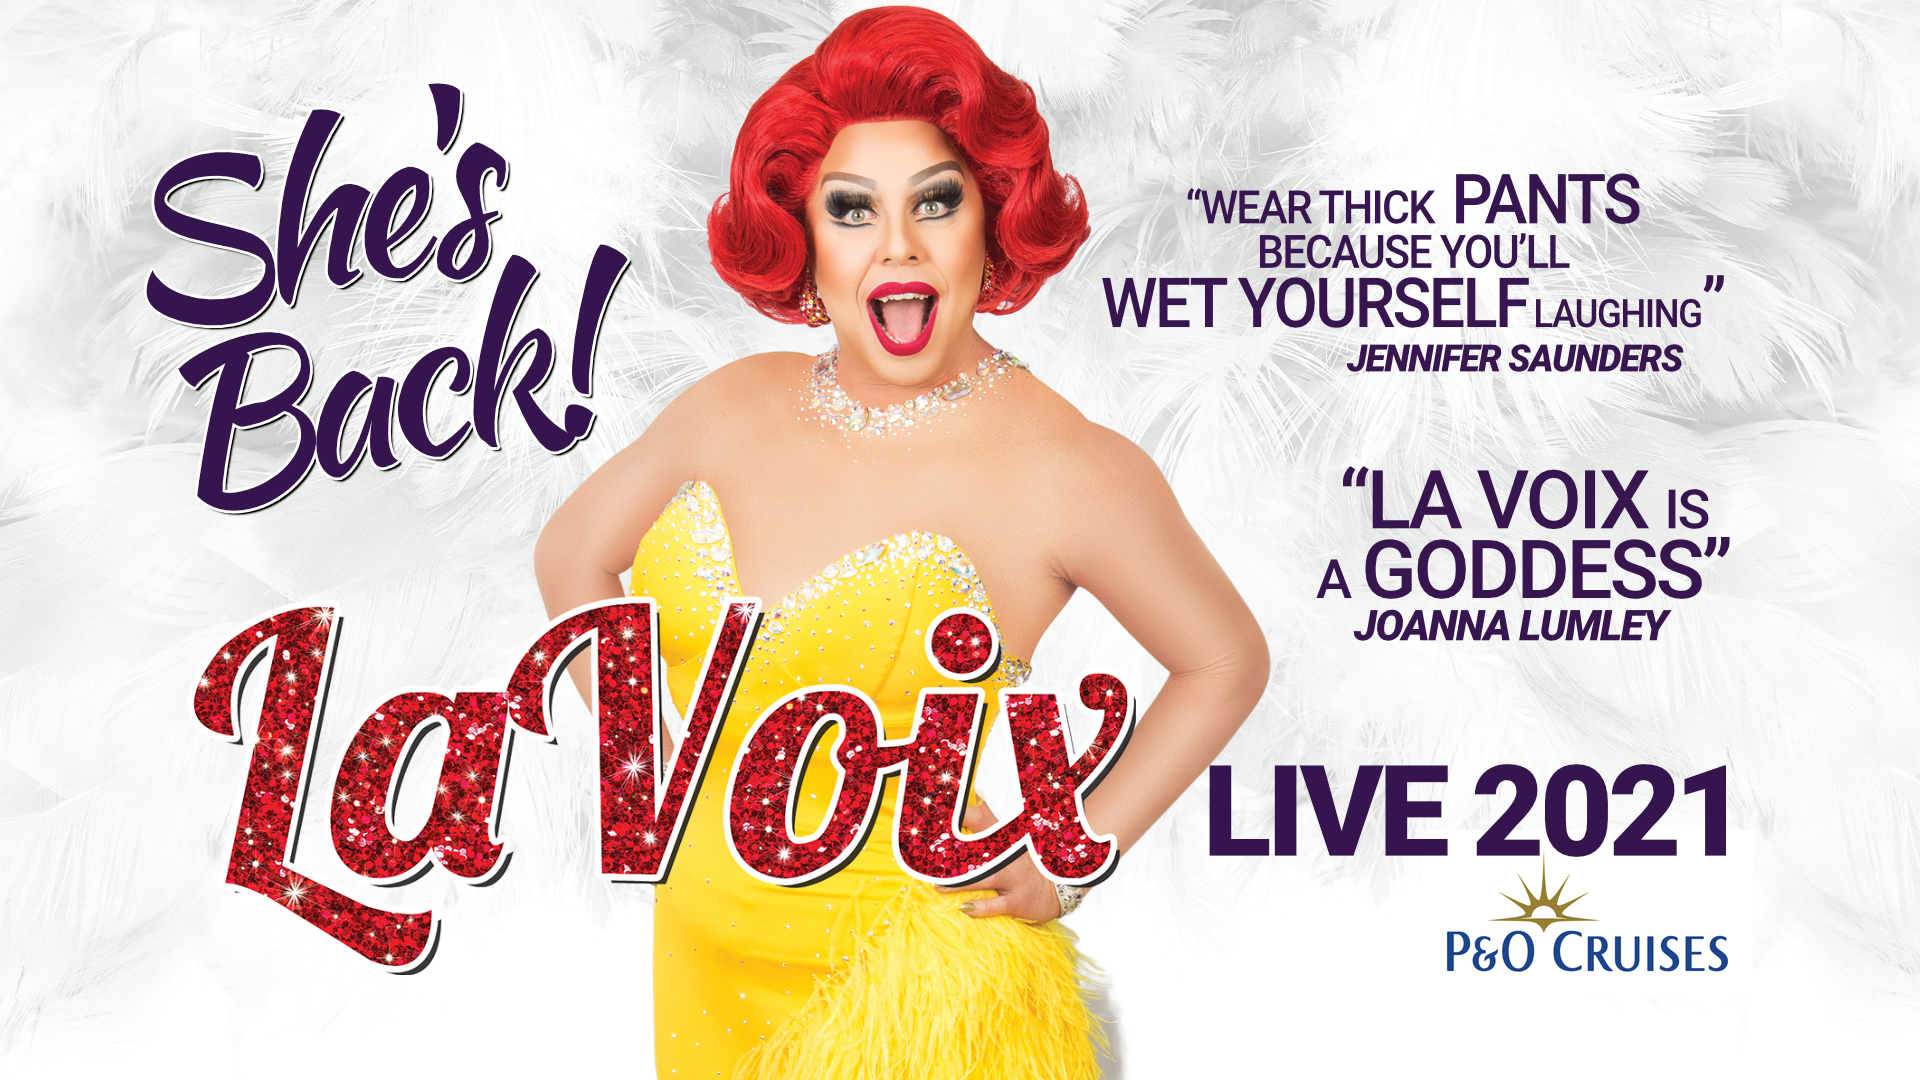 La Voix poses to promote her new tour in 2021